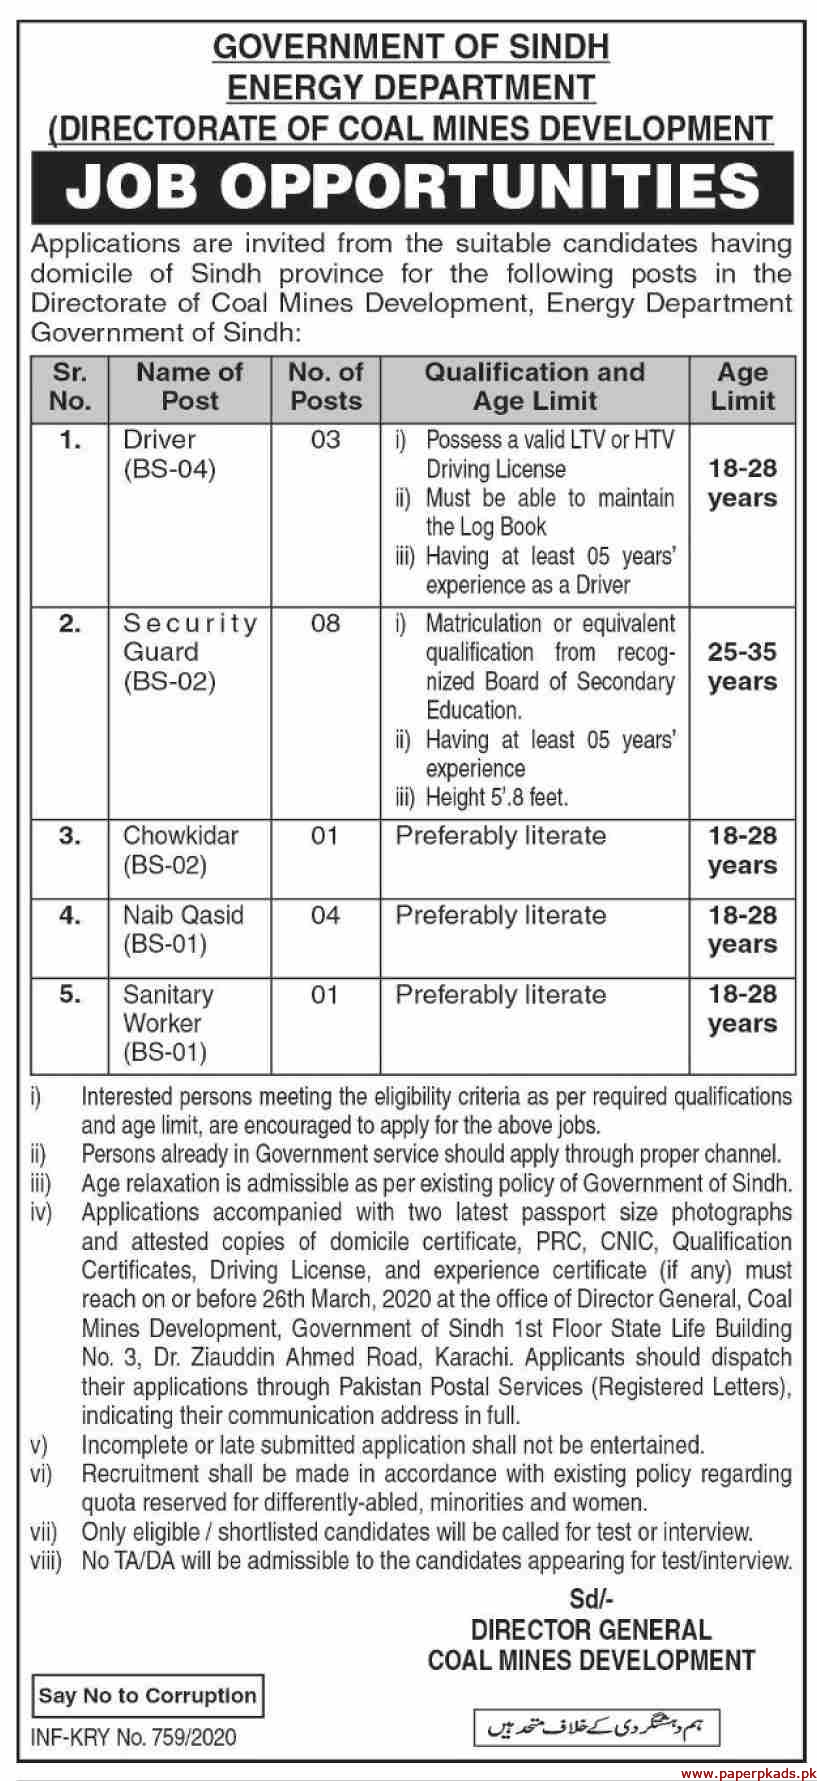 Government of Sindh Energy Department Jobs 2020 Latest